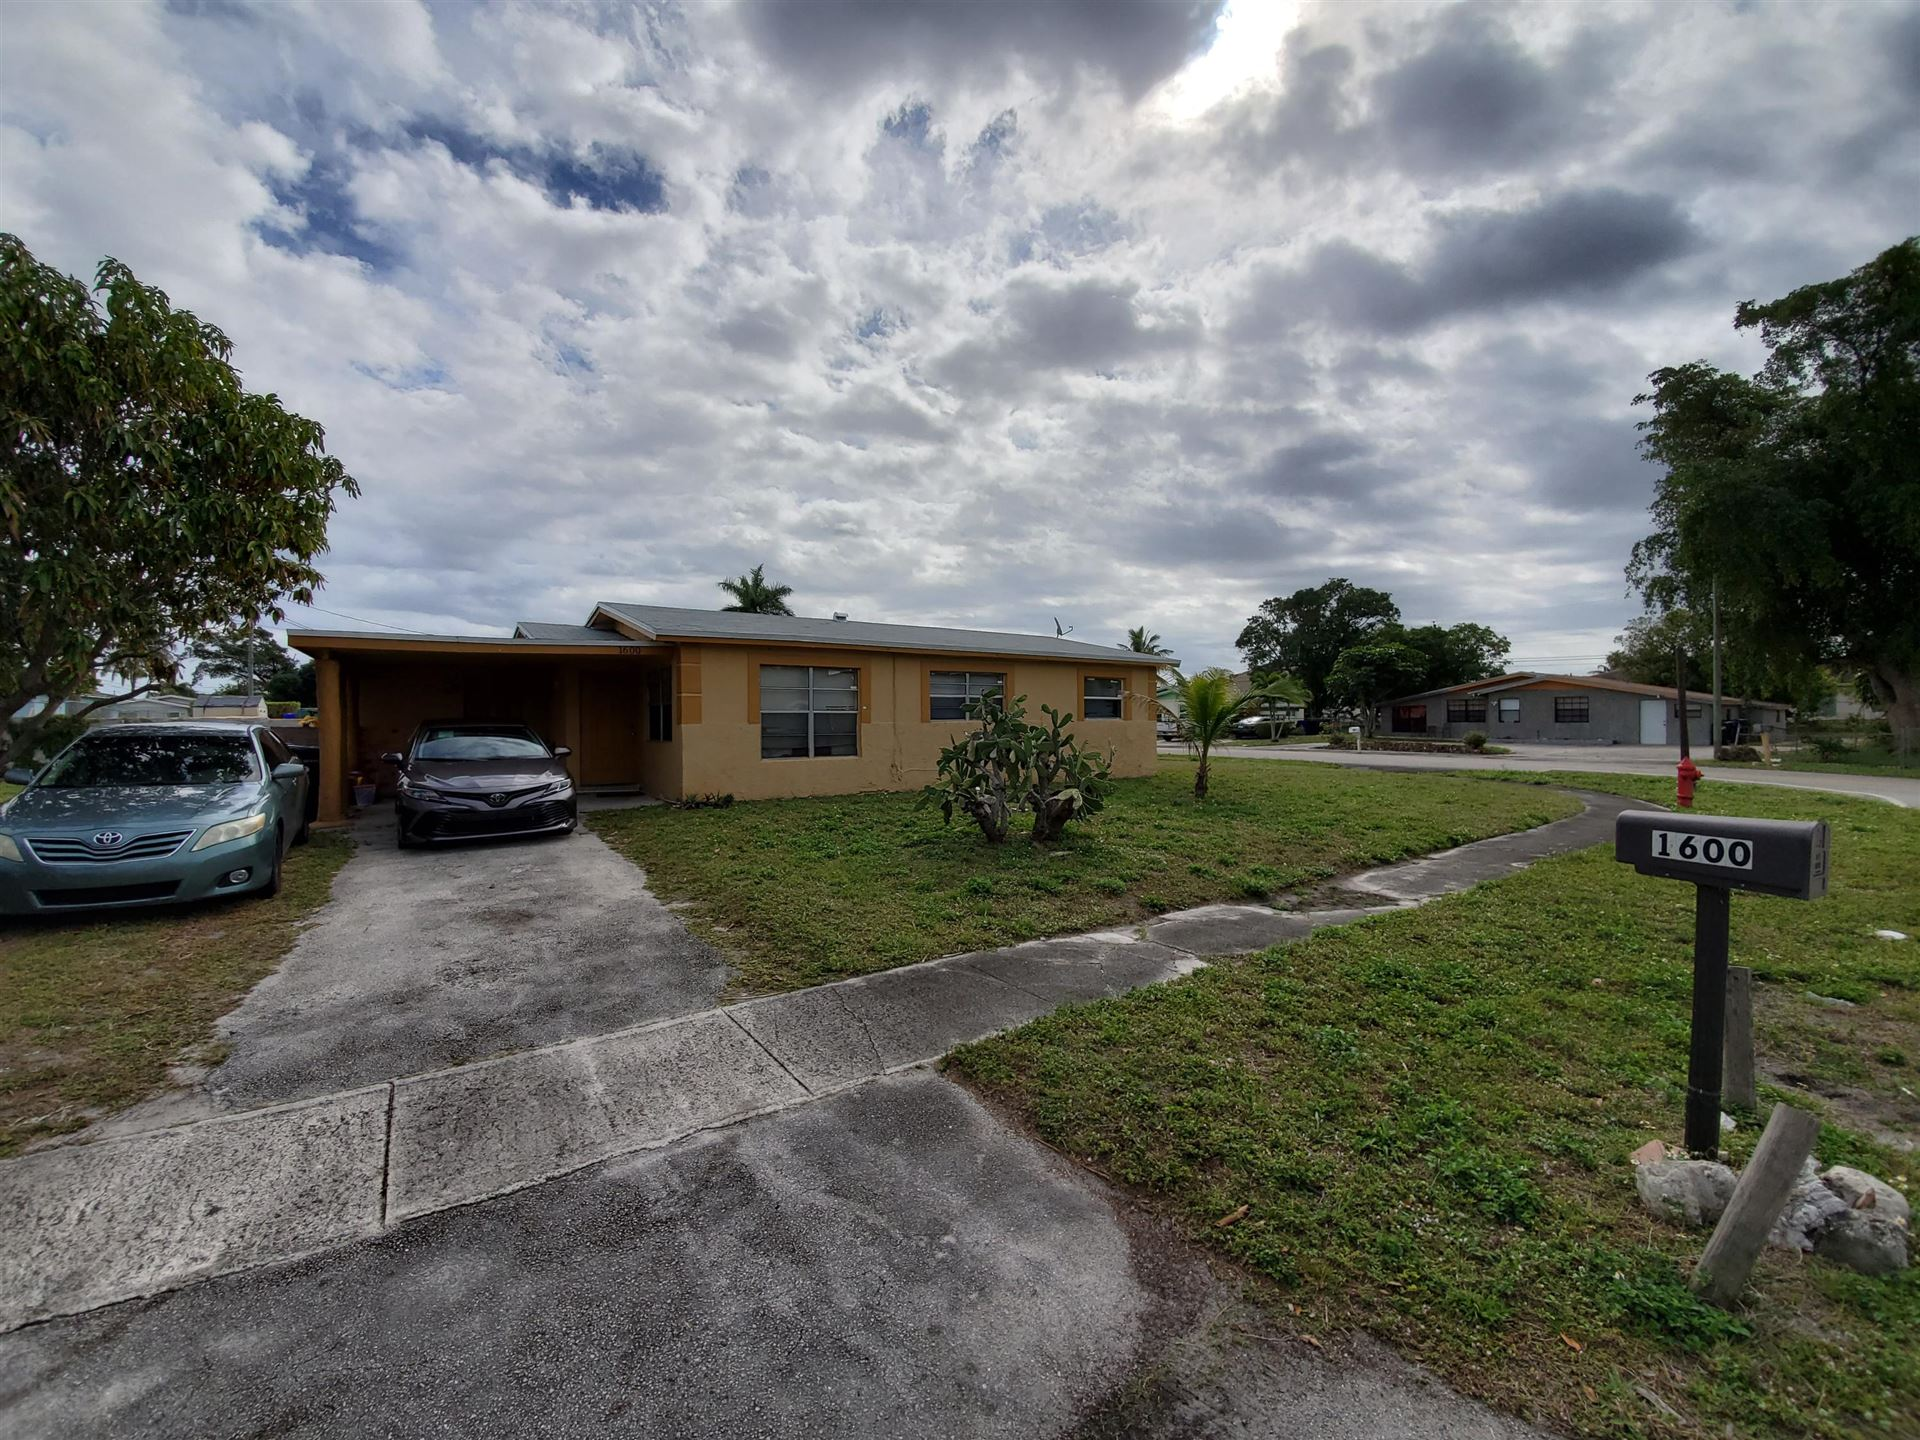 1600 NW 28th Avenue, Fort Lauderdale, FL 33311 - #: RX-10600563